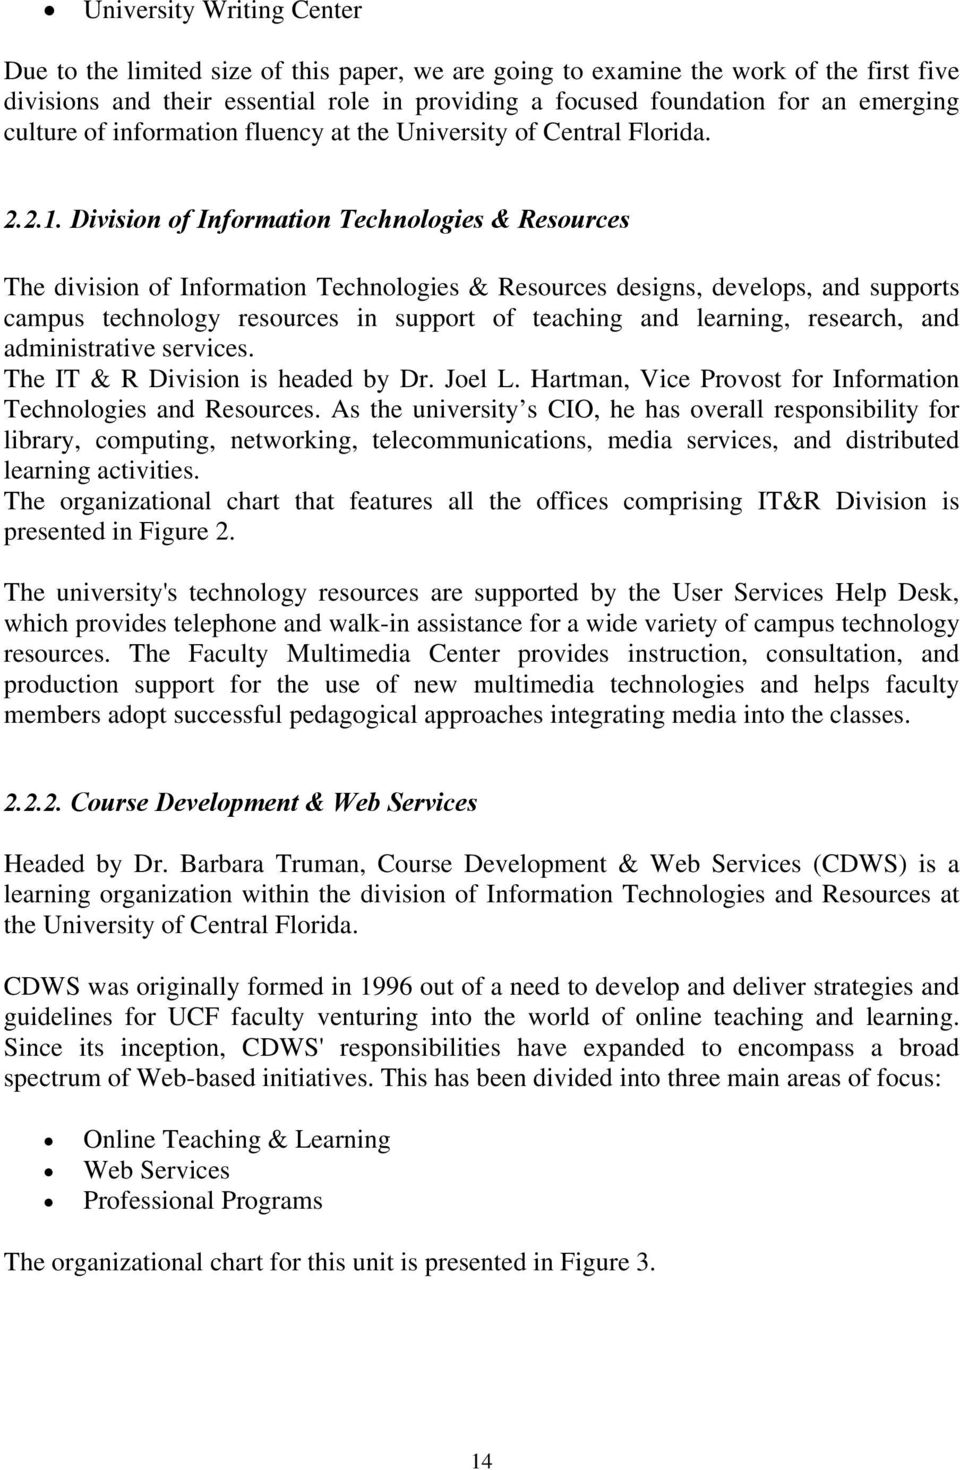 Division of Information Technologies & Resources The division of Information Technologies & Resources designs, develops, and supports campus technology resources in support of teaching and learning,